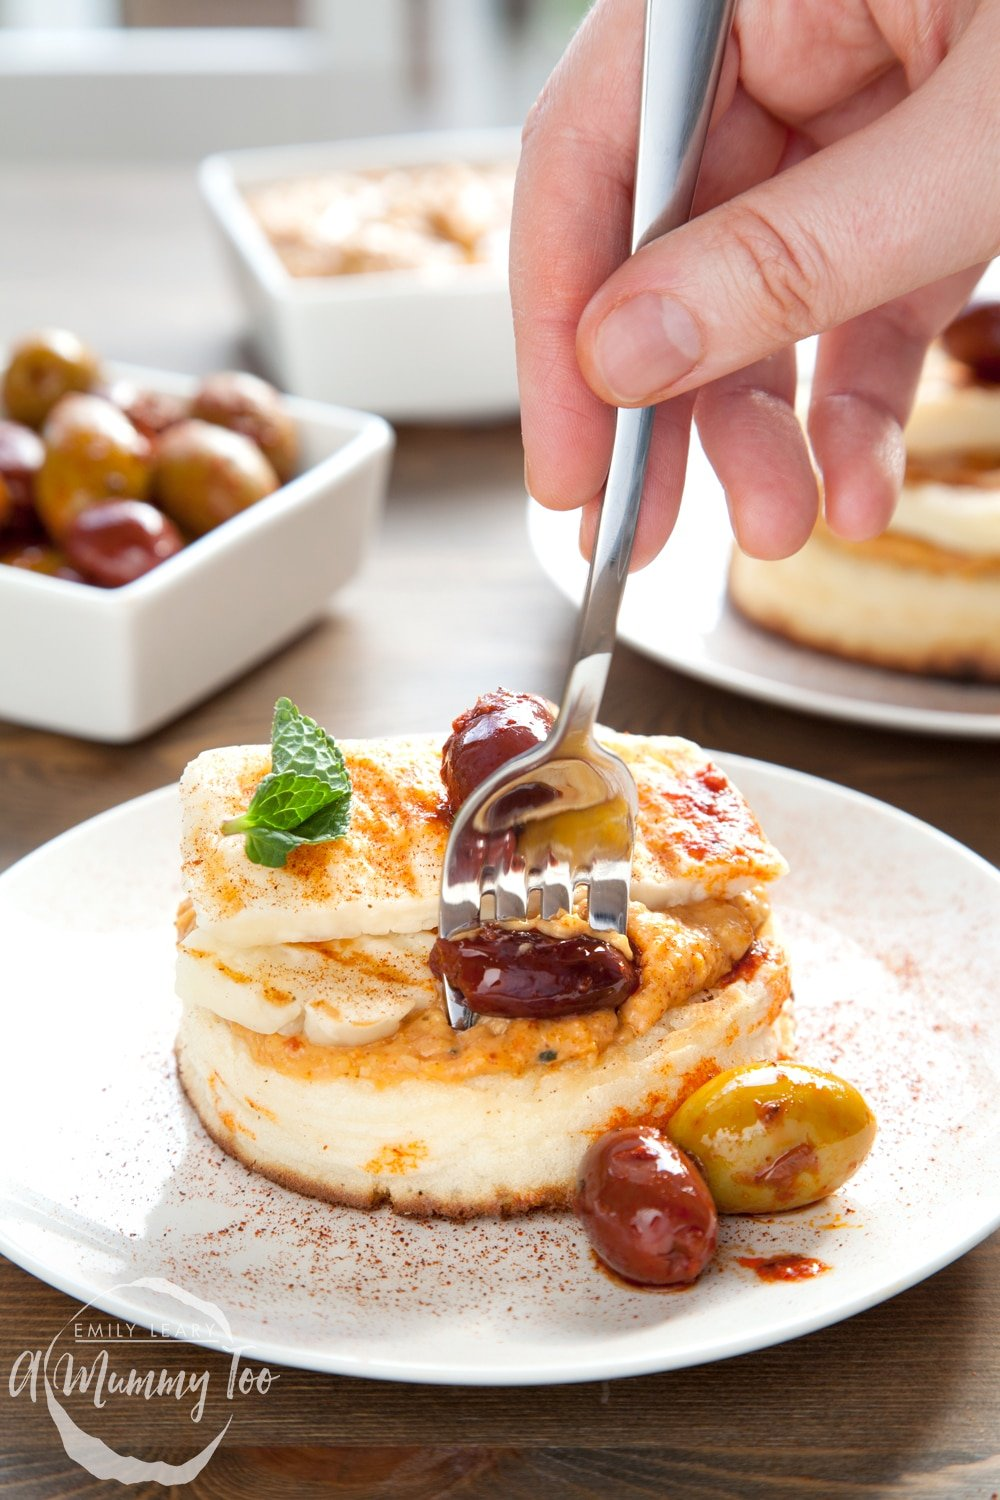 Enjoy these delicious gluten-free meze-inspired crumpets for brunch!